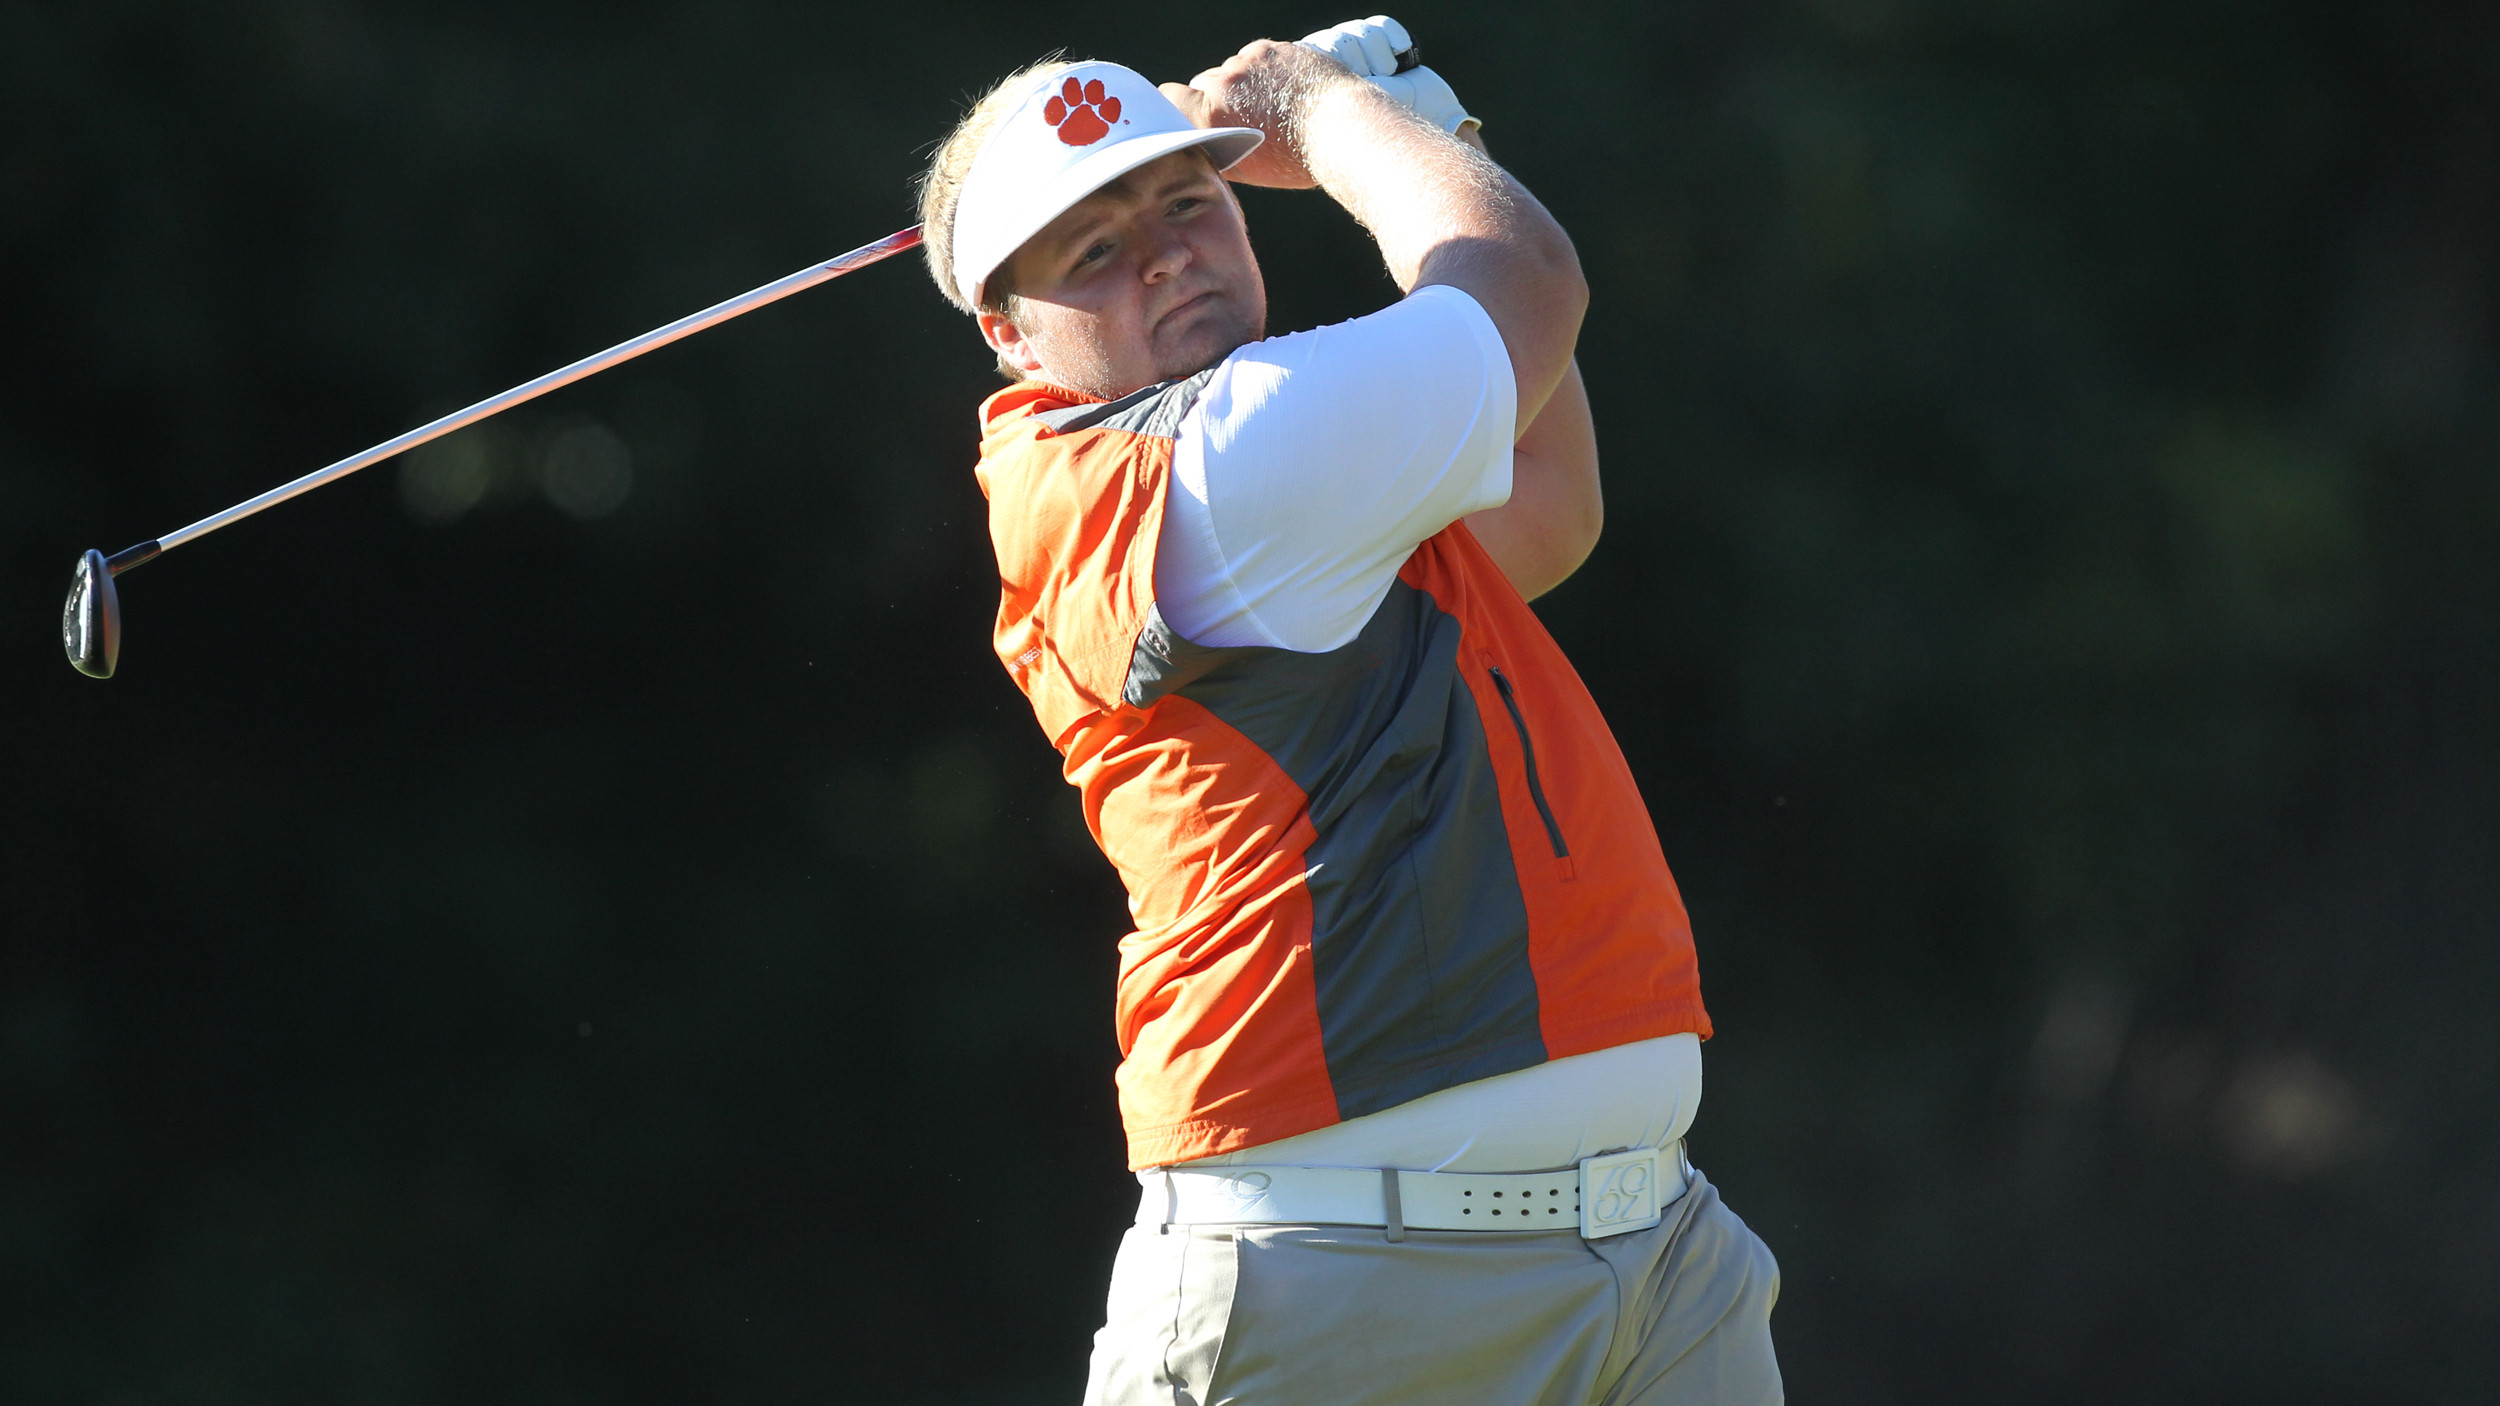 Clemson in Sixth Place after First Round of Puerto Rico Classic